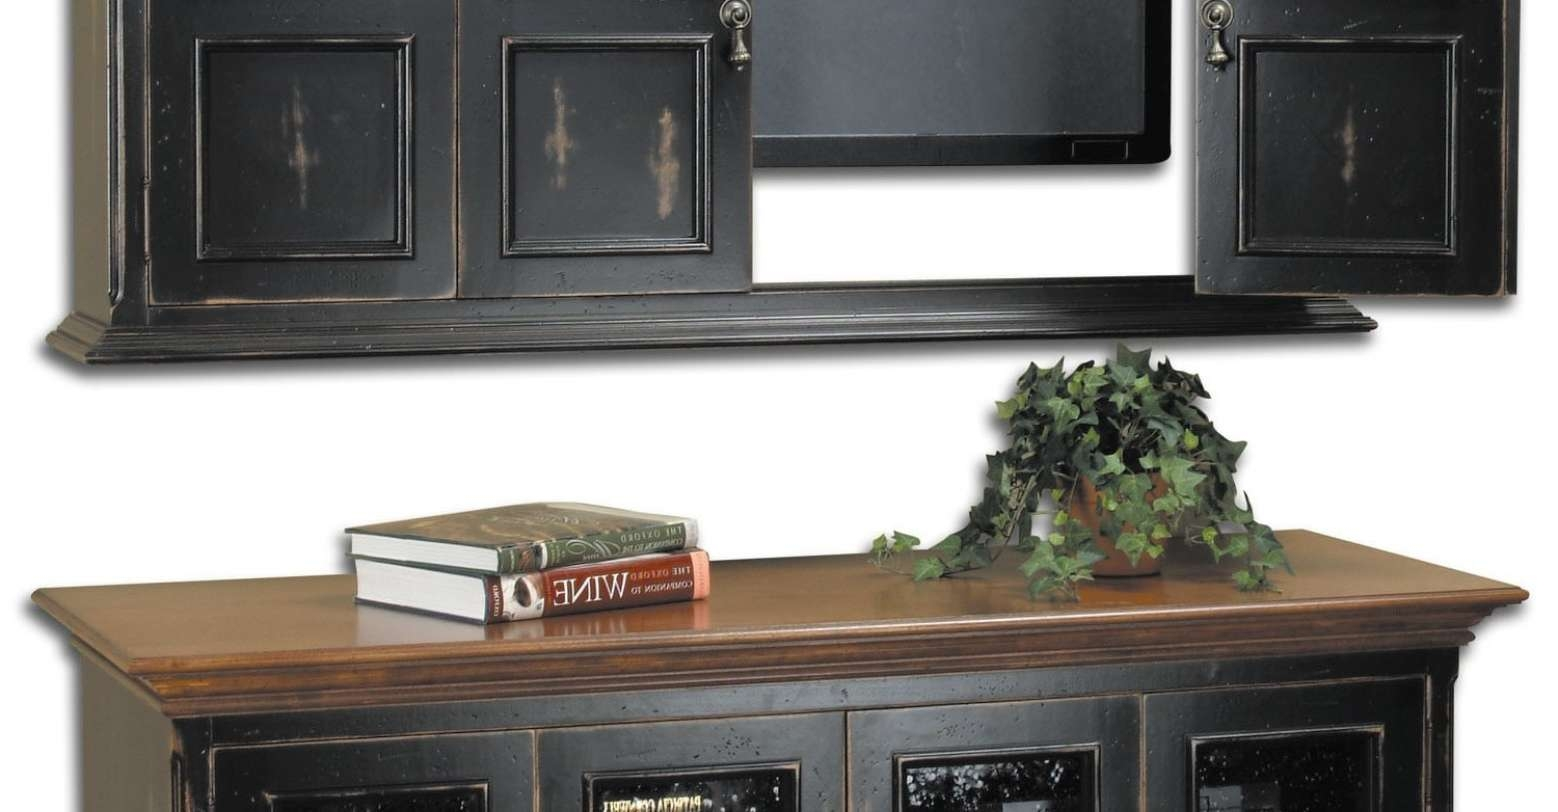 Tv : Enclosed Tv Cabinets For Flat Screens With Doors Dramatic With Regard To Enclosed Tv Cabinets For Flat Screens With Doors (View 15 of 20)